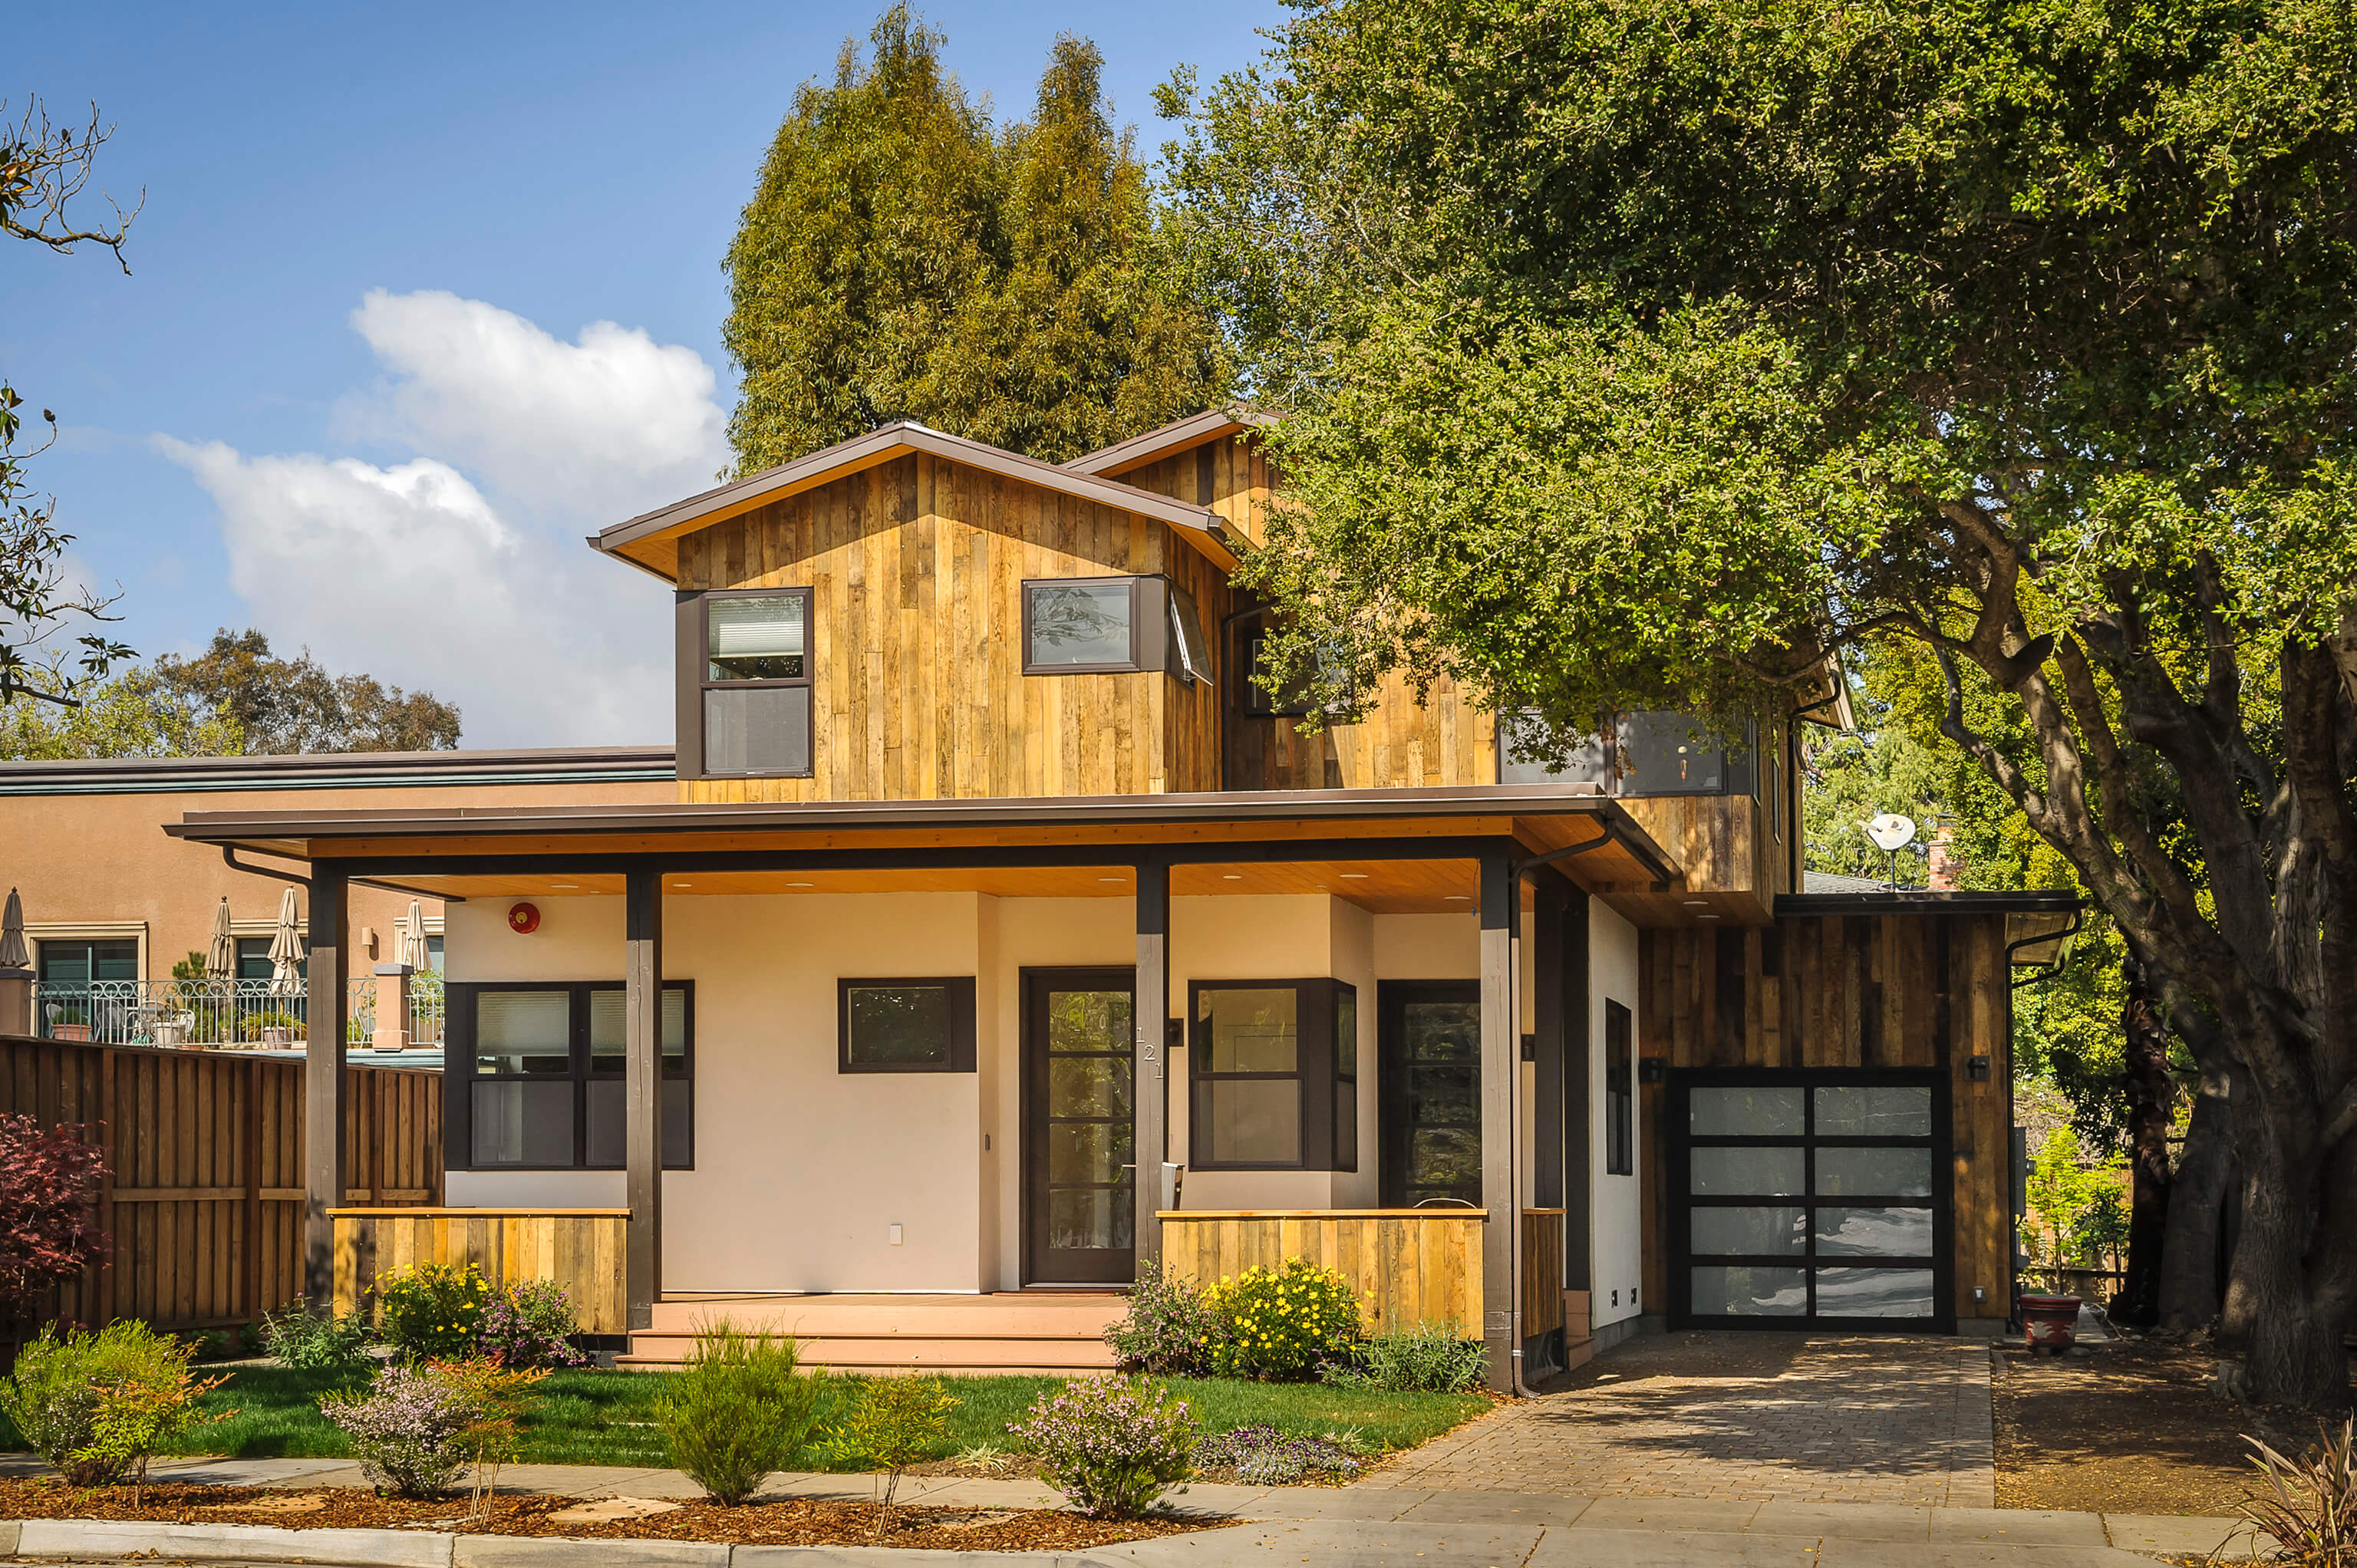 California Modular Home